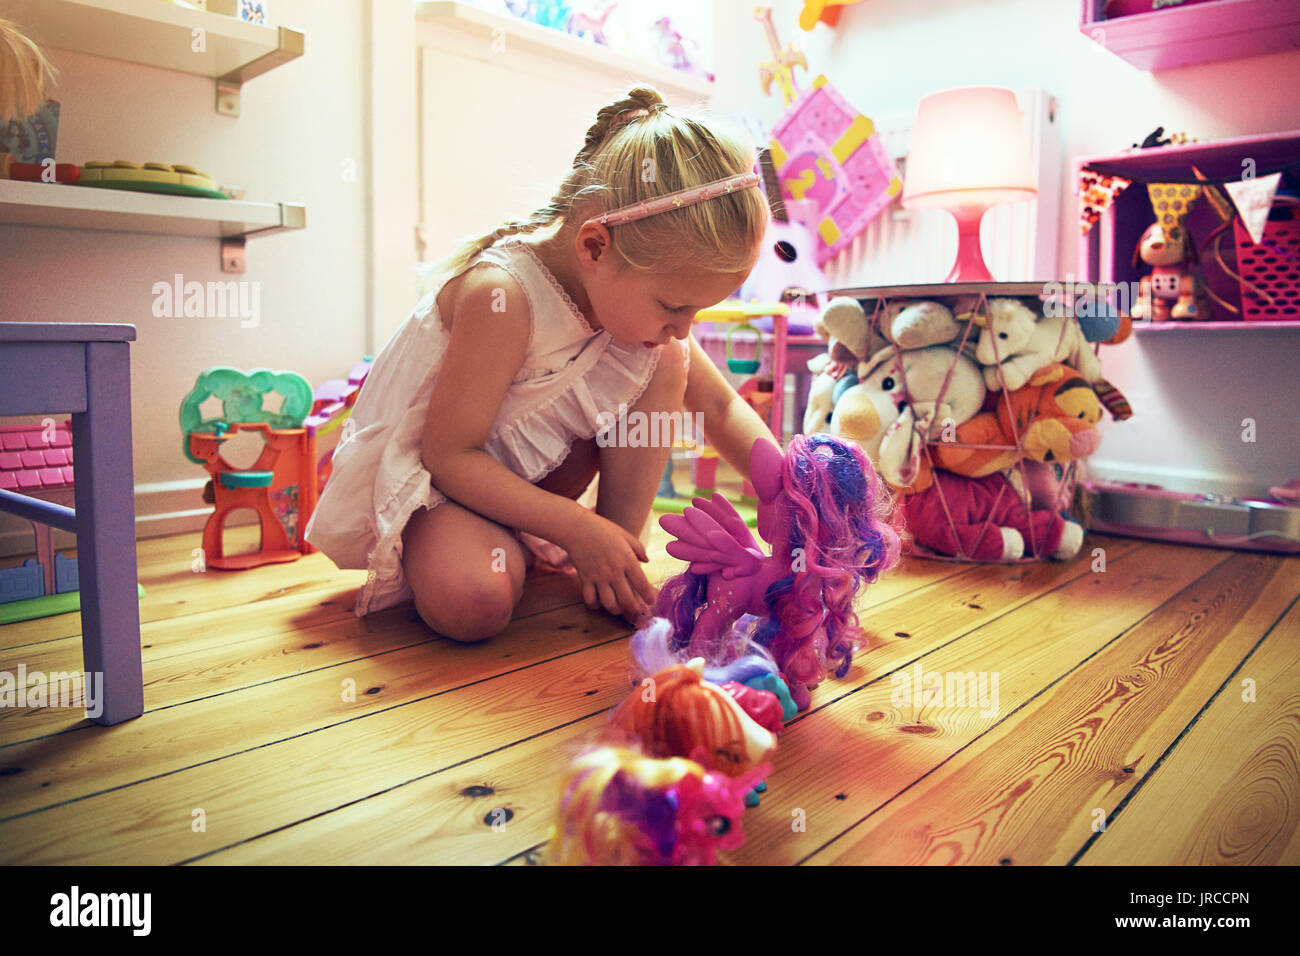 Thoughtful little girl putting toys in line on the floor. Horizontal indoors shot. - Stock Image